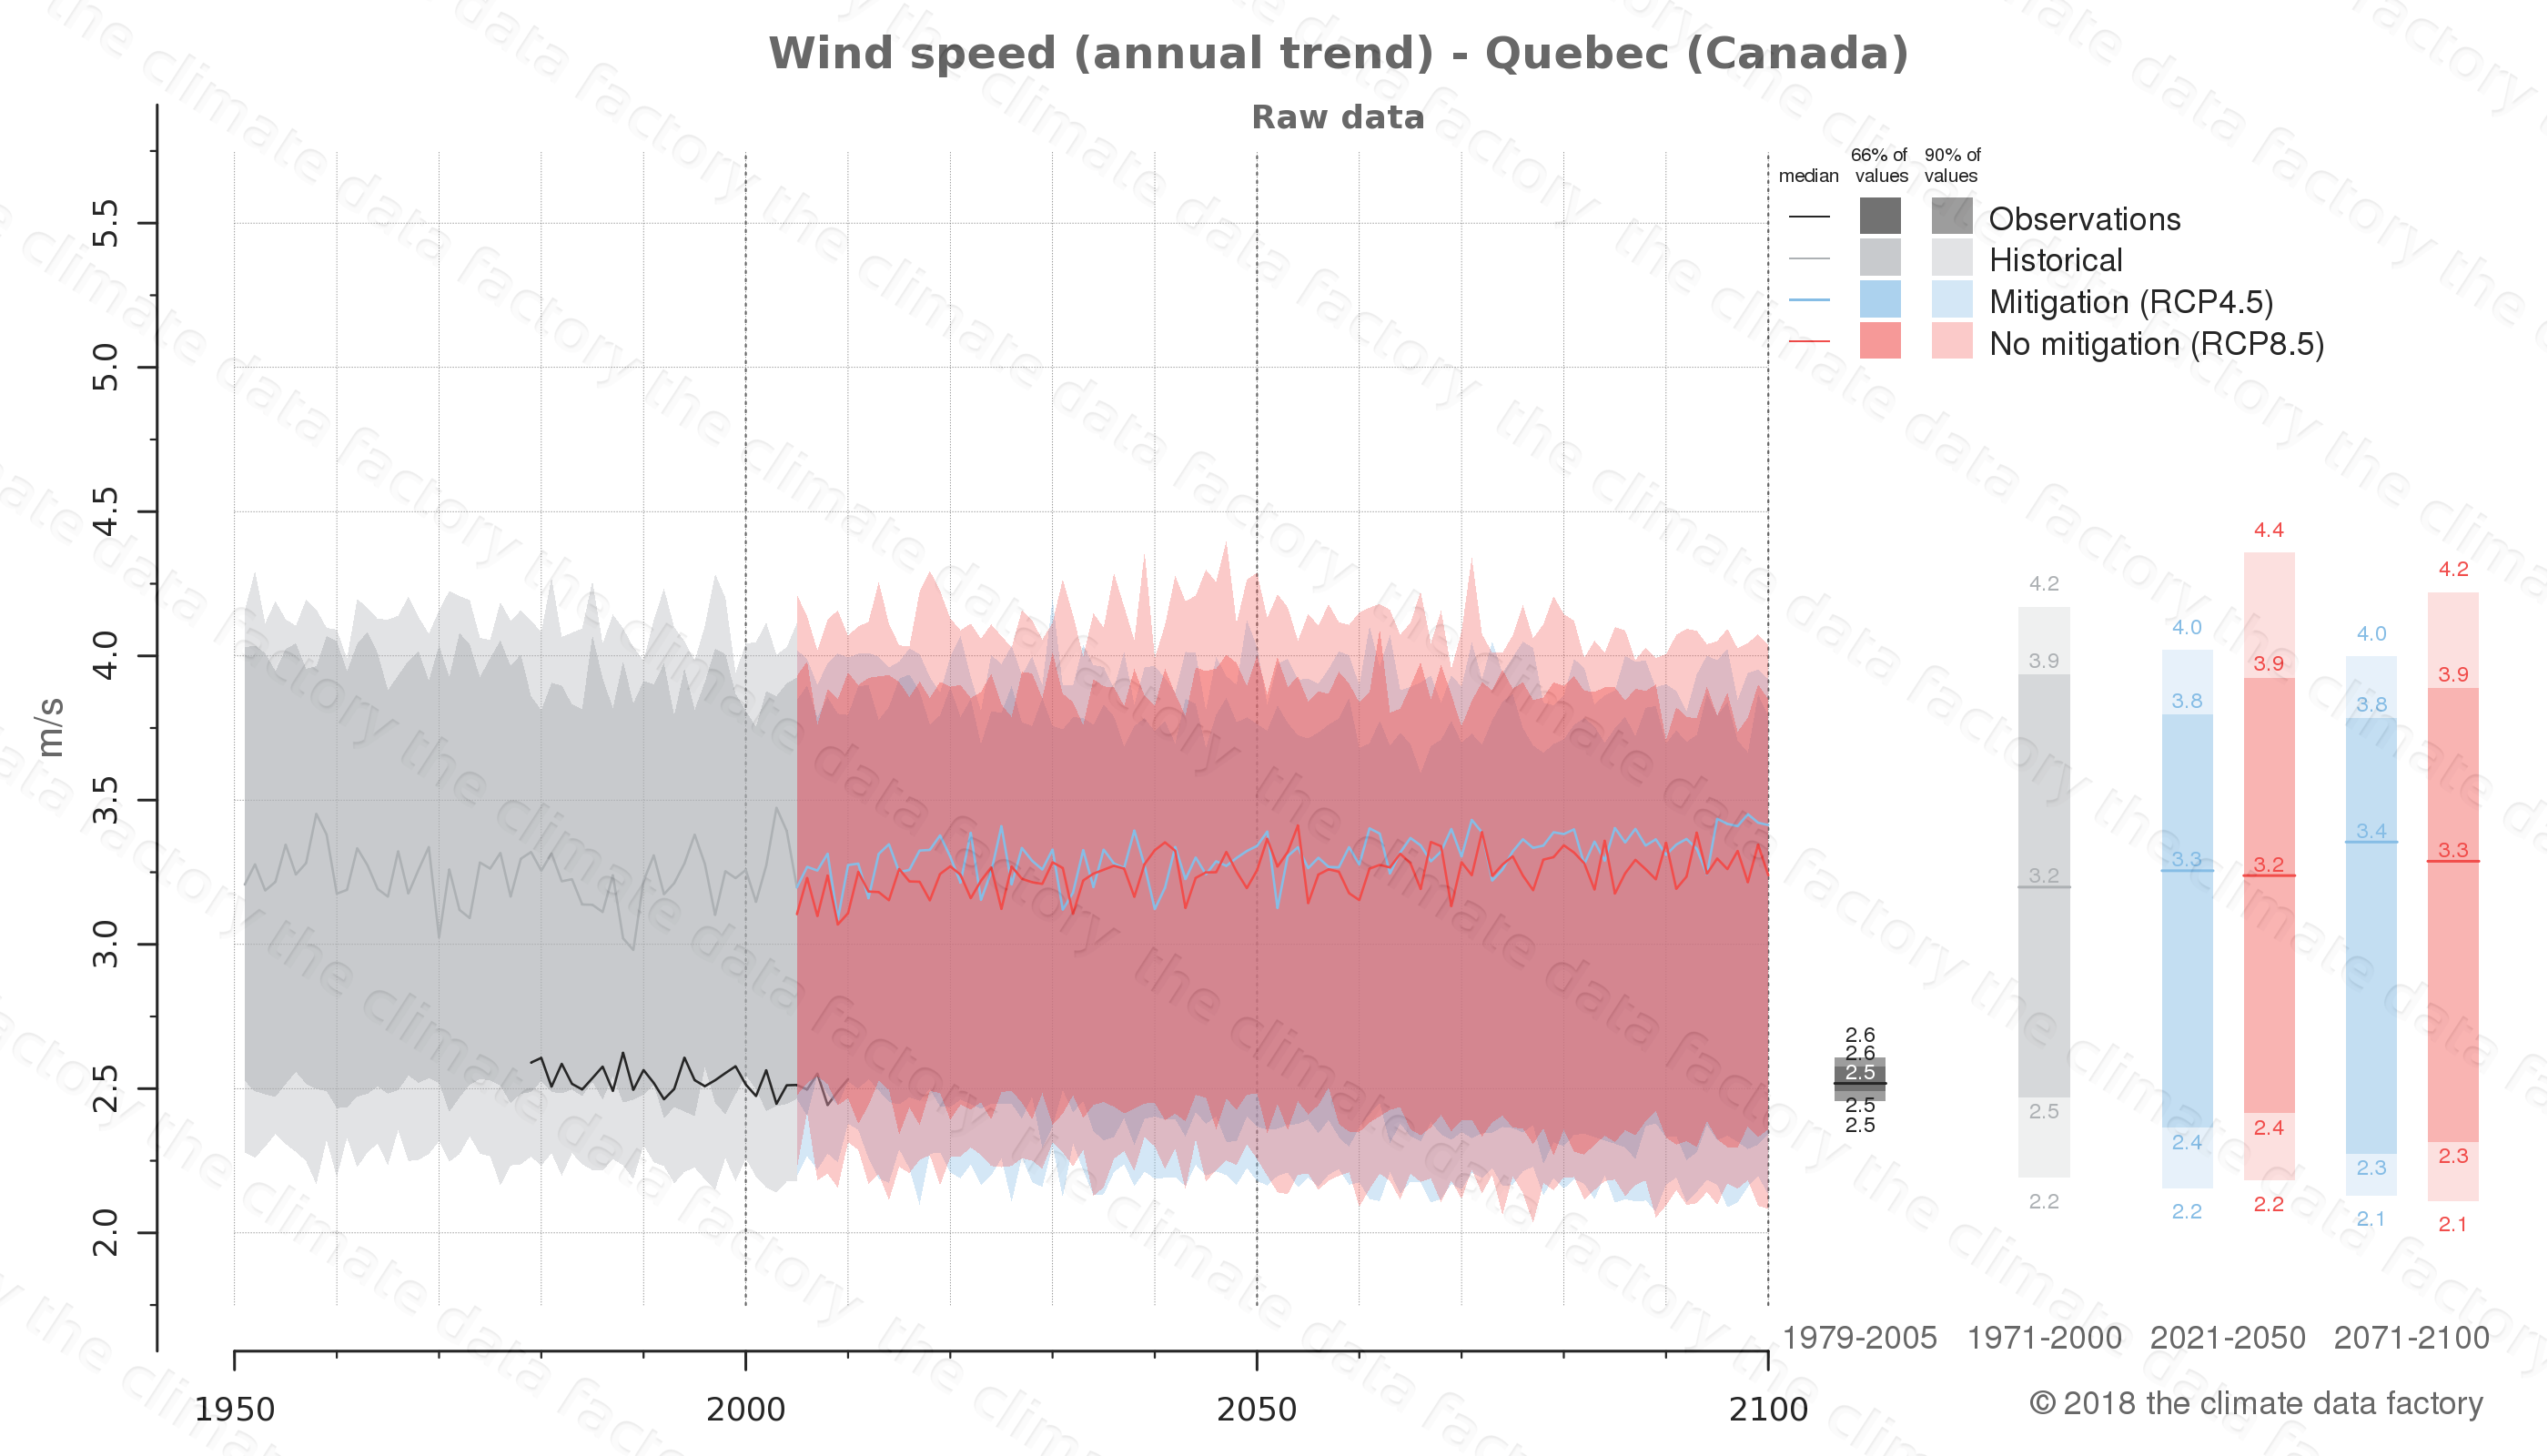 climate change data policy adaptation climate graph city data wind-speed quebec canada